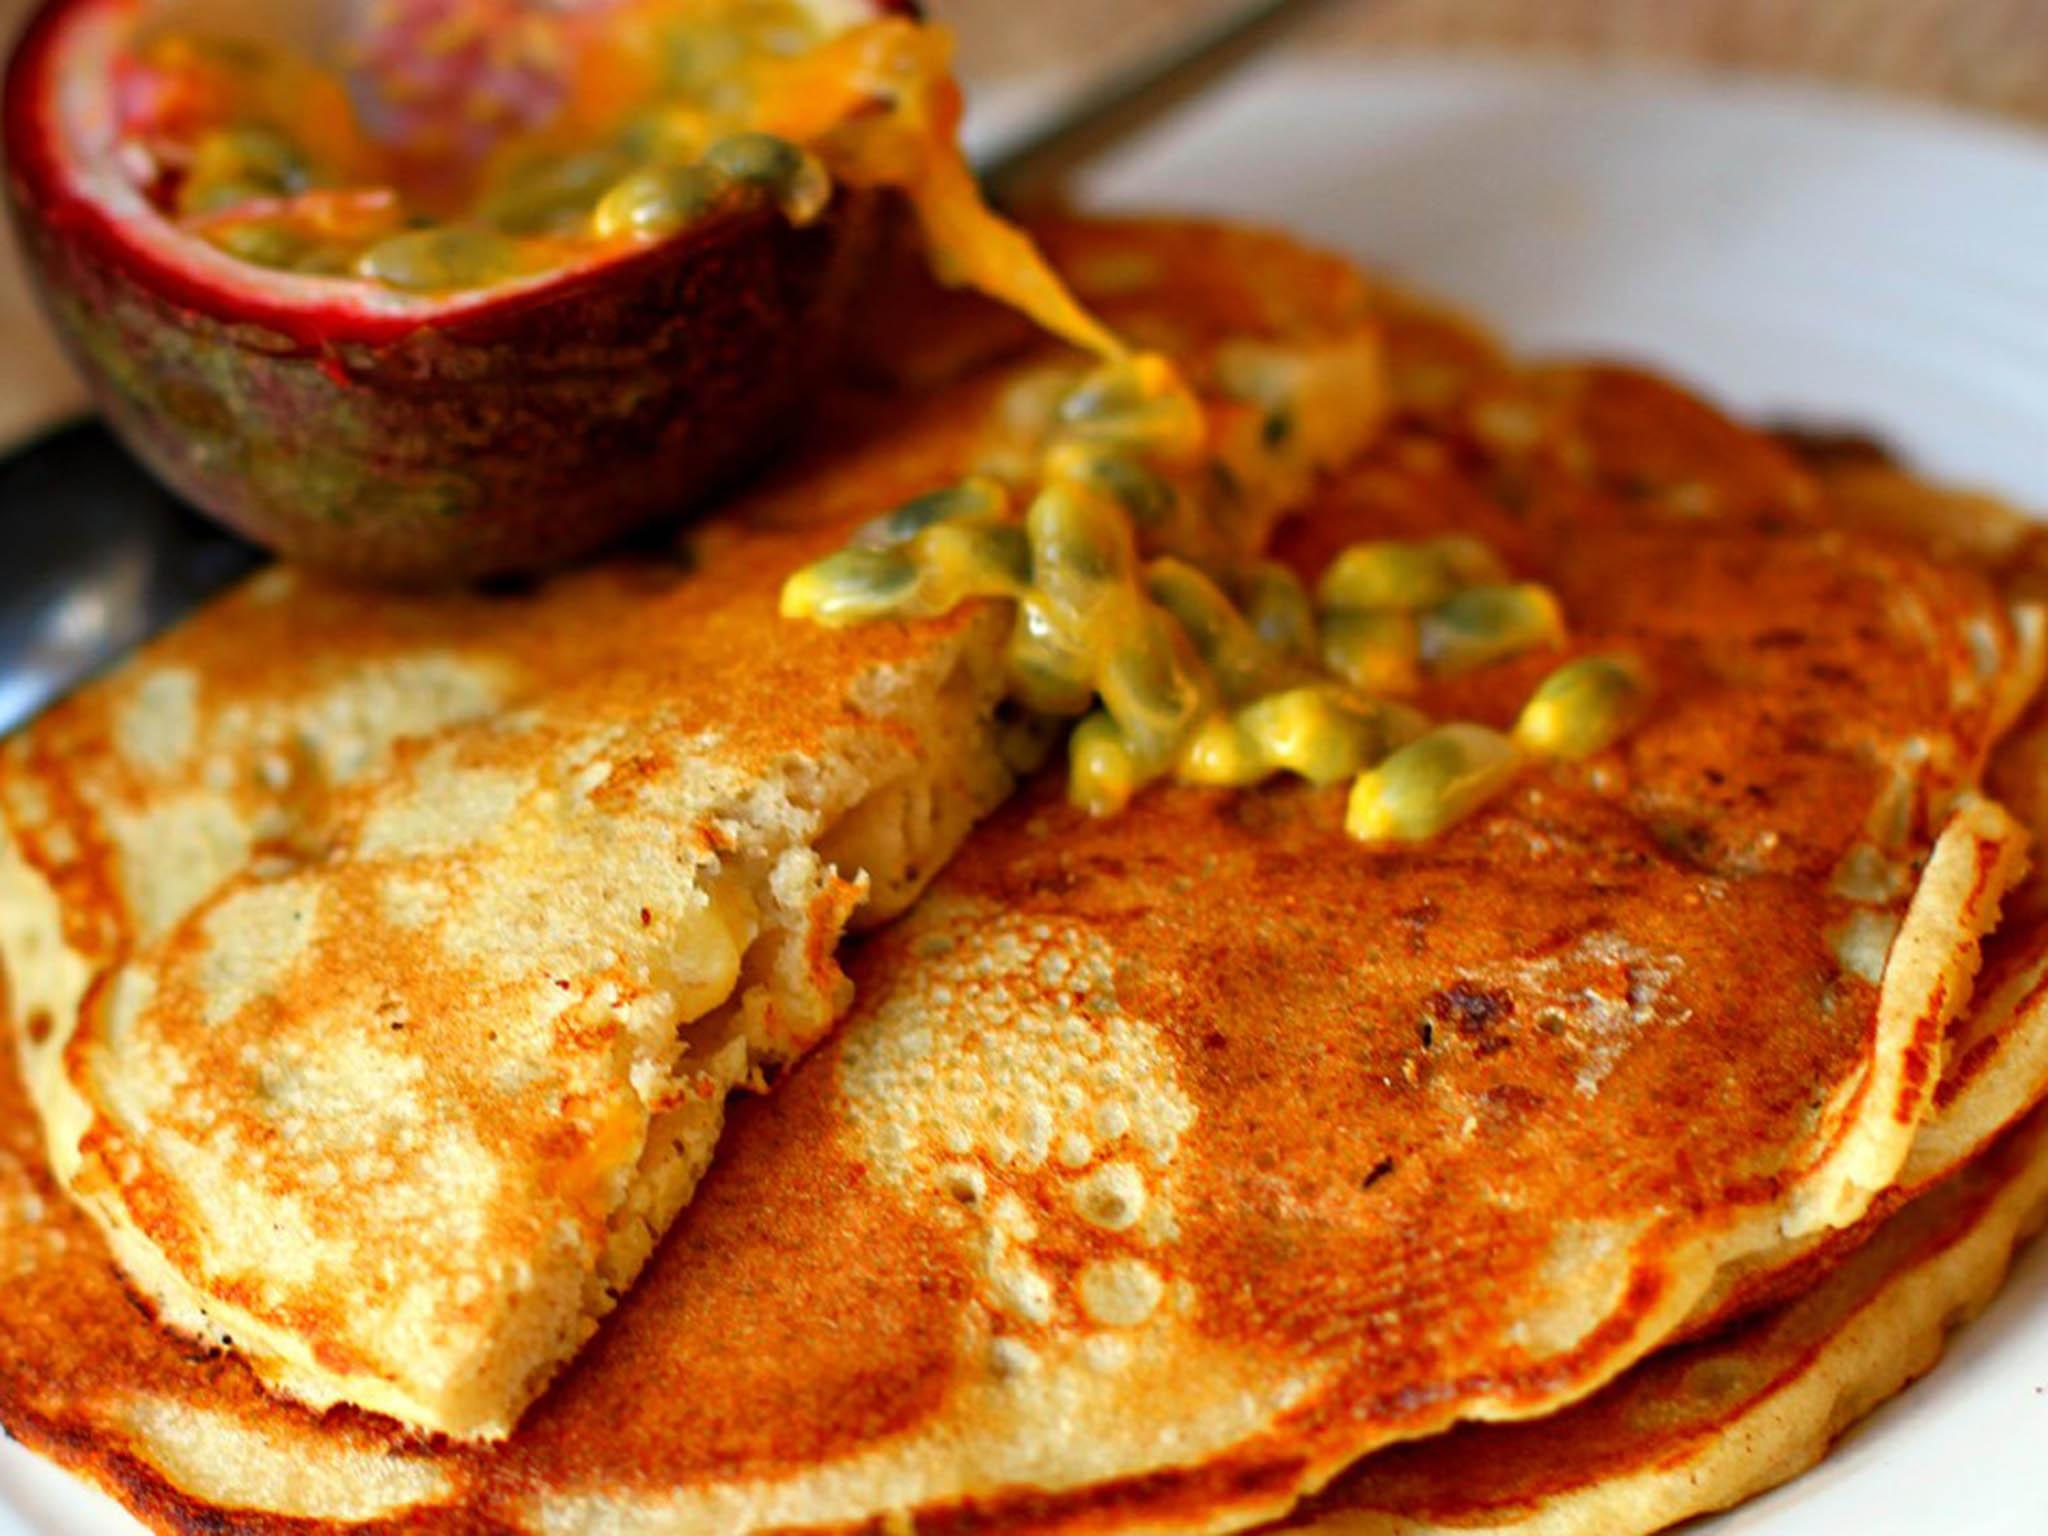 Brunch on Saturday: Mix up pancakes with crunchy fruit and indulge in duck